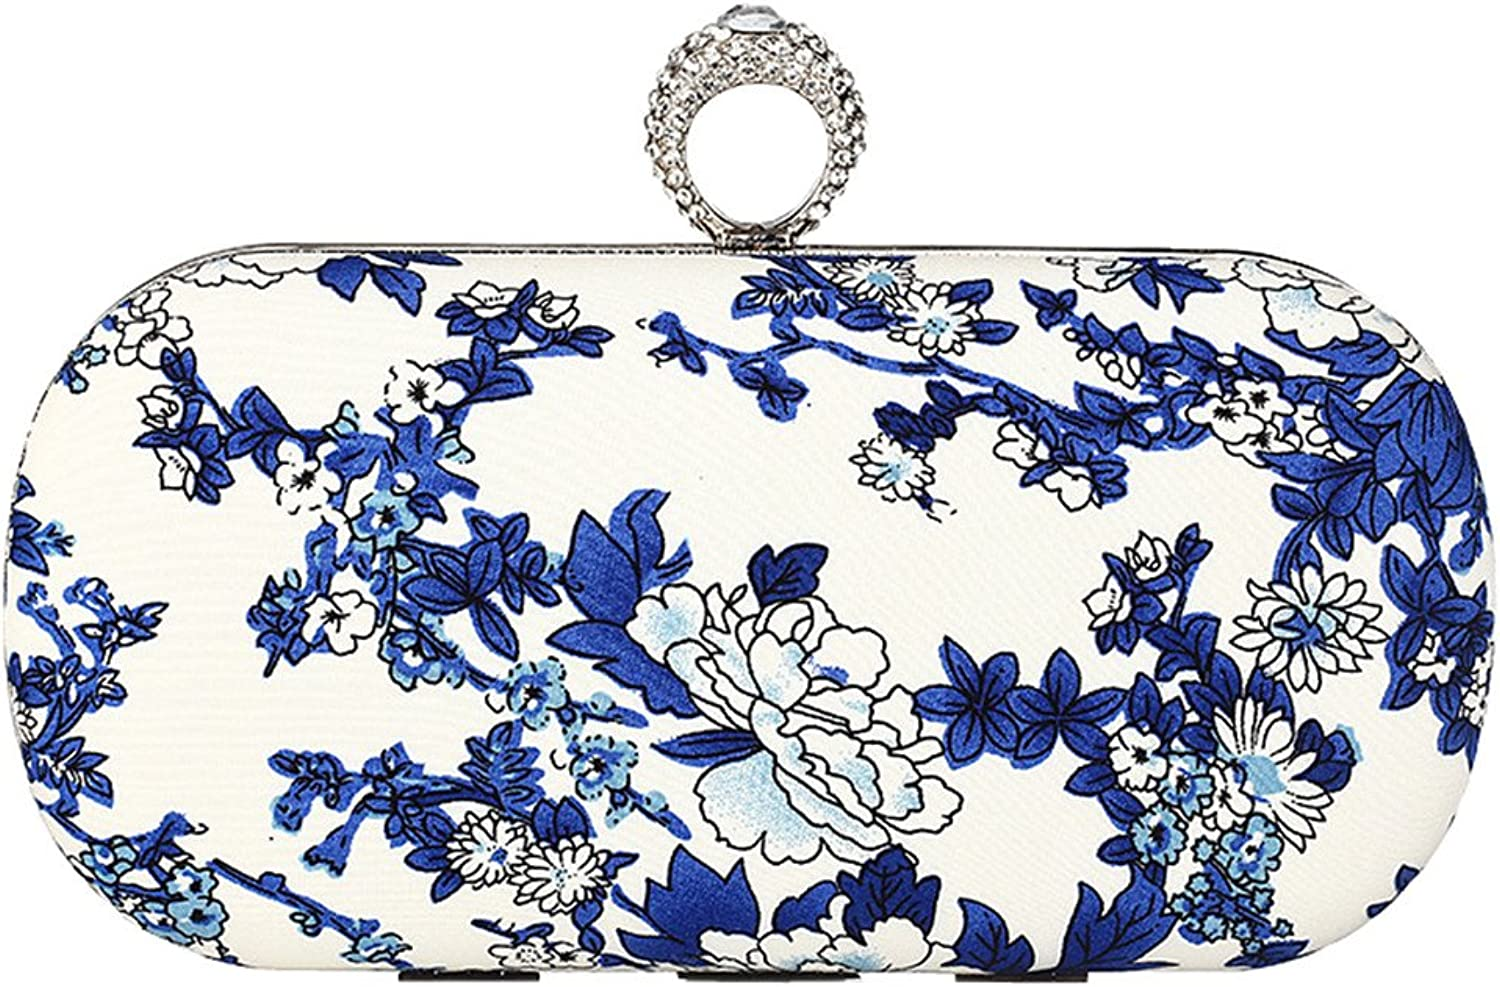 2017 Ring bluee White Porcelain Printed Evening Clutch Sparkly Beaded Finger Printed PU Leather Hardbox Bag